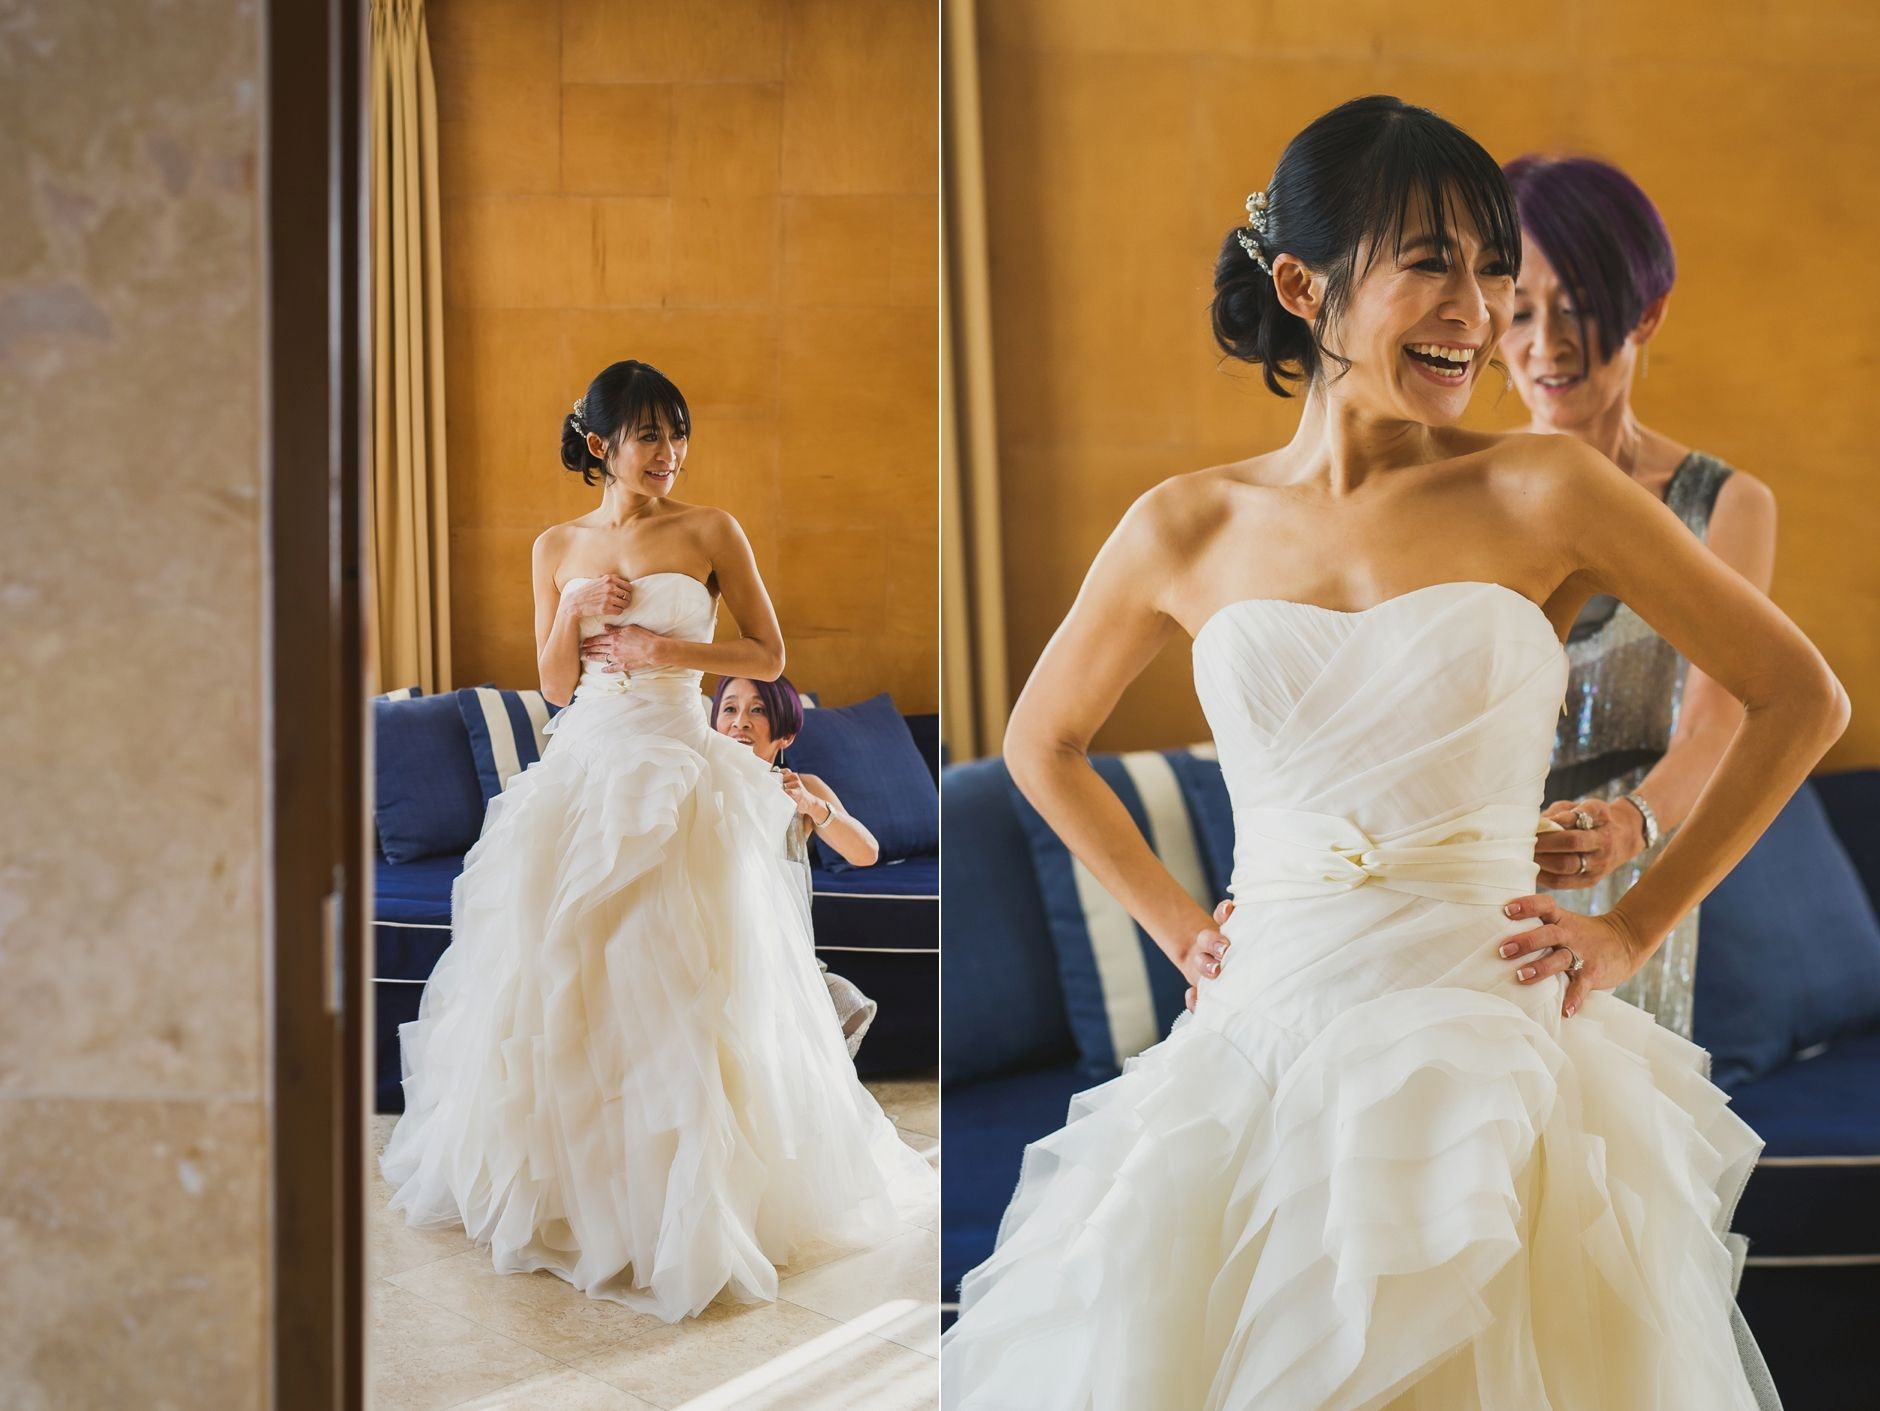 Vera Wang Diana Wedding Dress | Wedding at The Raleigh Hotel in ...